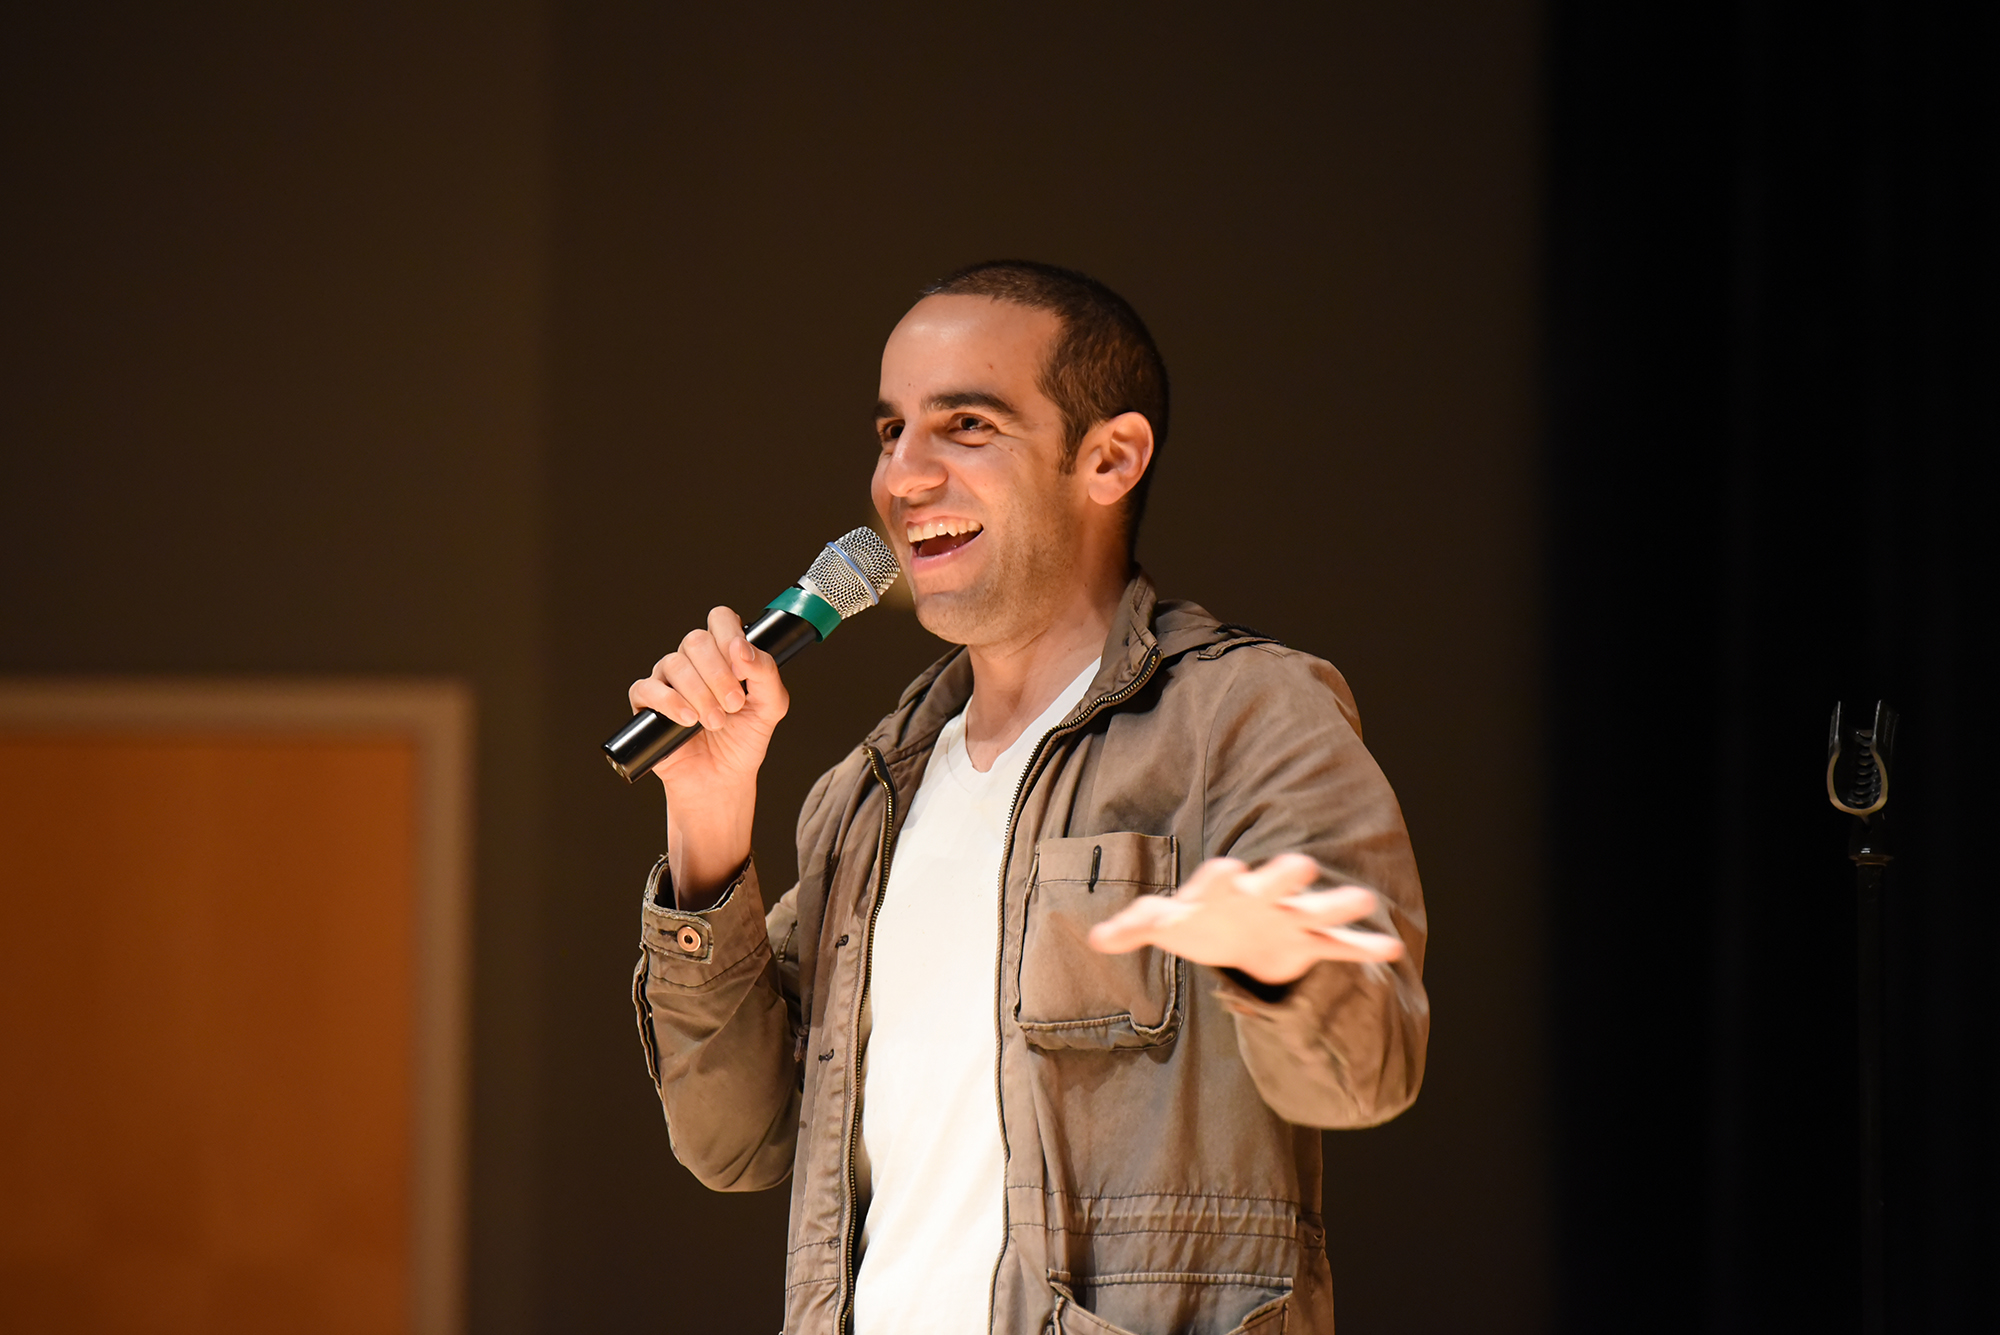 Comedian Dan Ahdoot during his show in the Student Union Theater in Storrs, Connecticut on Thursday, April 7, 2016. (Zhelun Lang/The Daily Campus)